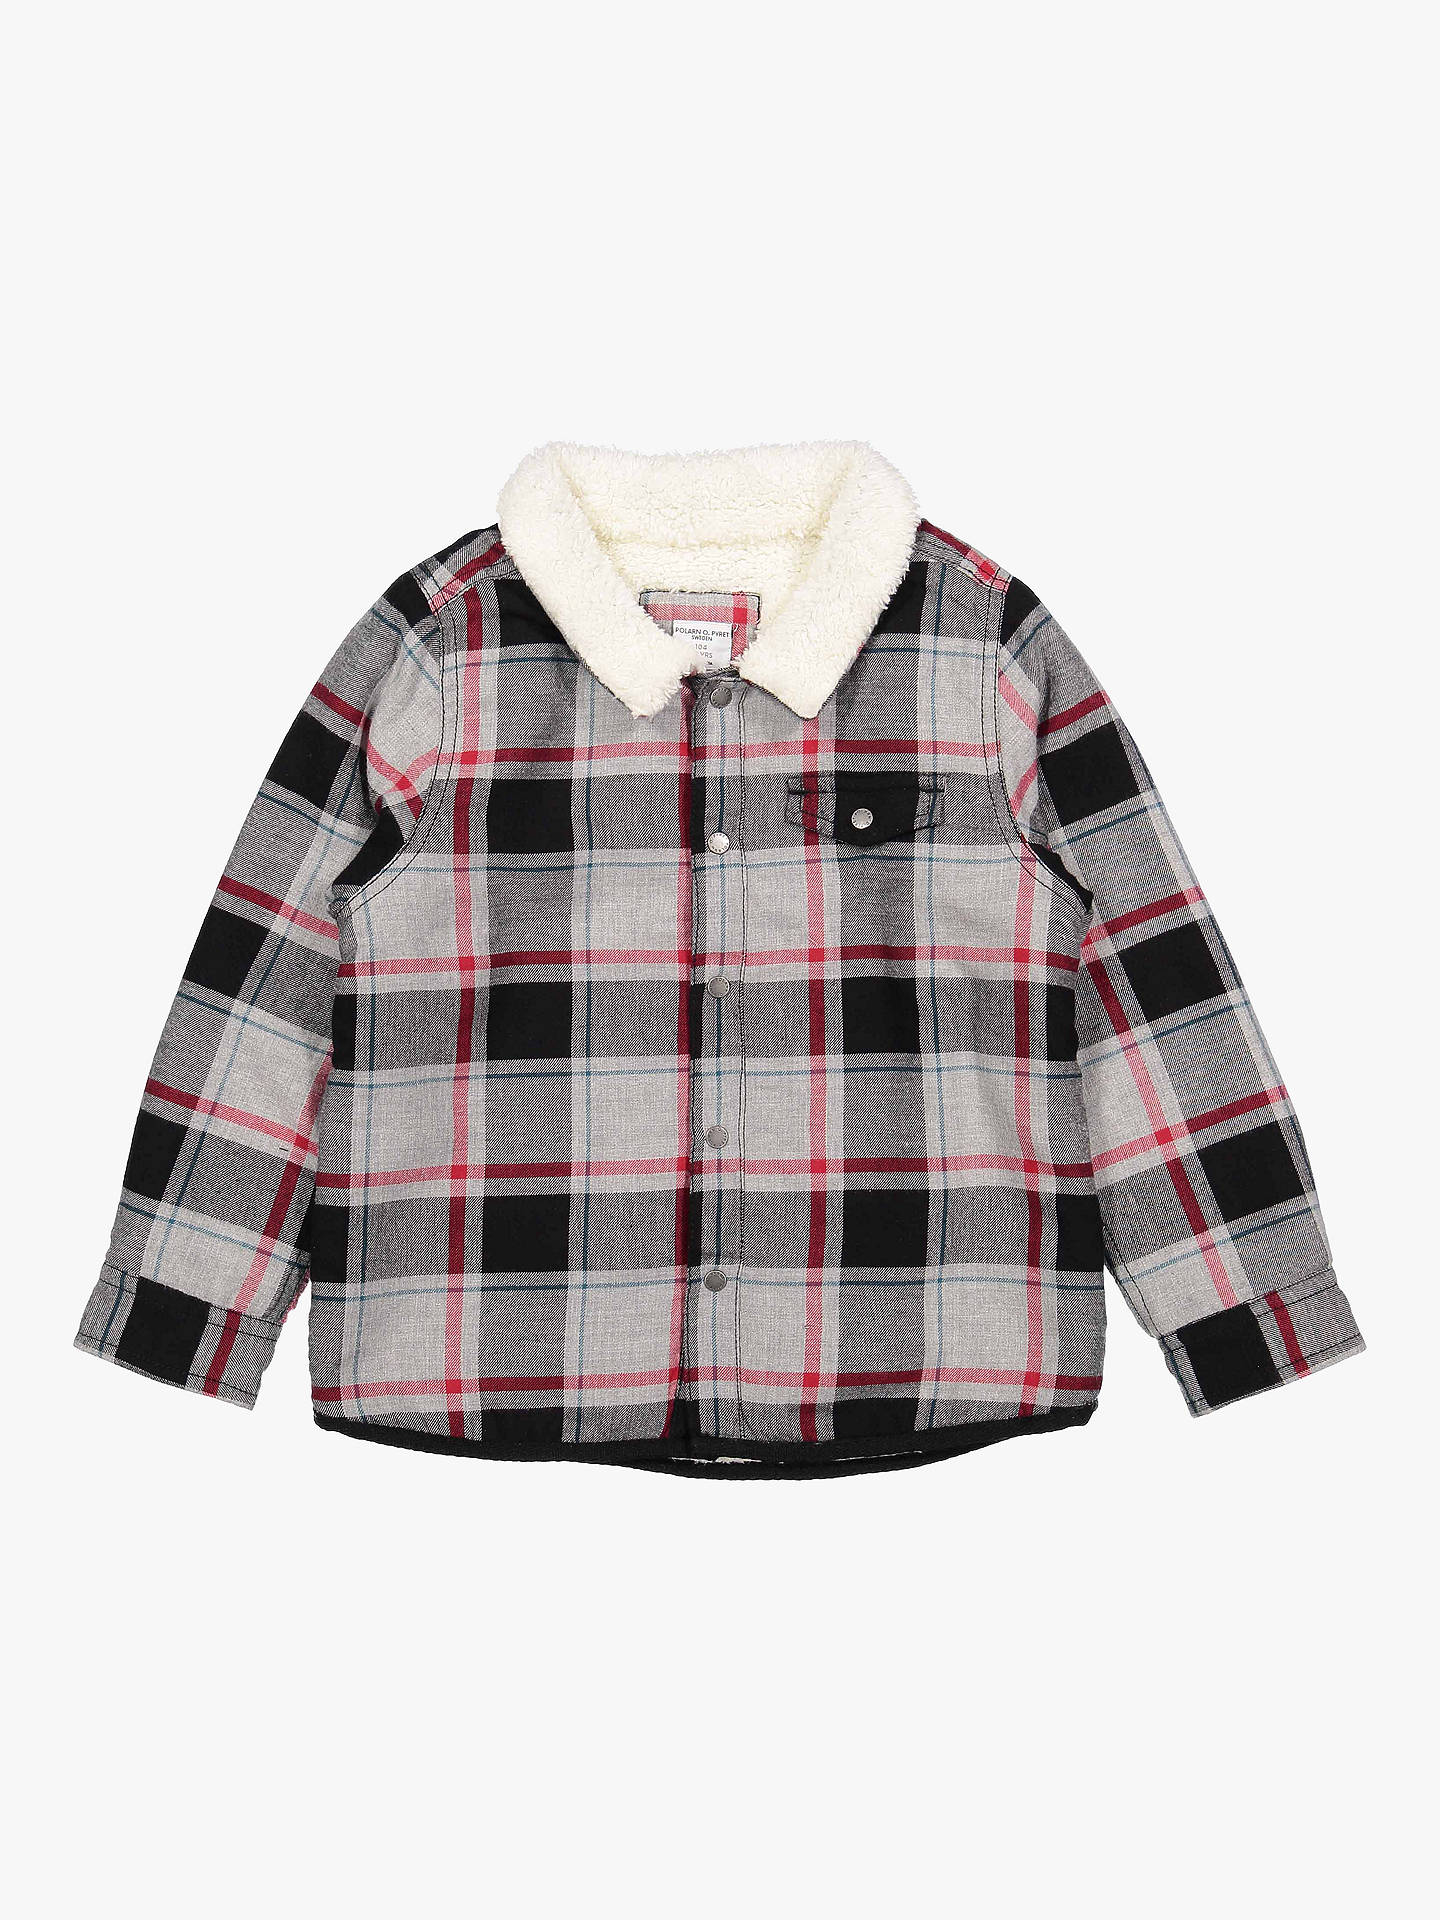 BuyPolarn O. Pyret Baby Fleece Collar Check Shirt, Grey, 6-9 months Online at johnlewis.com